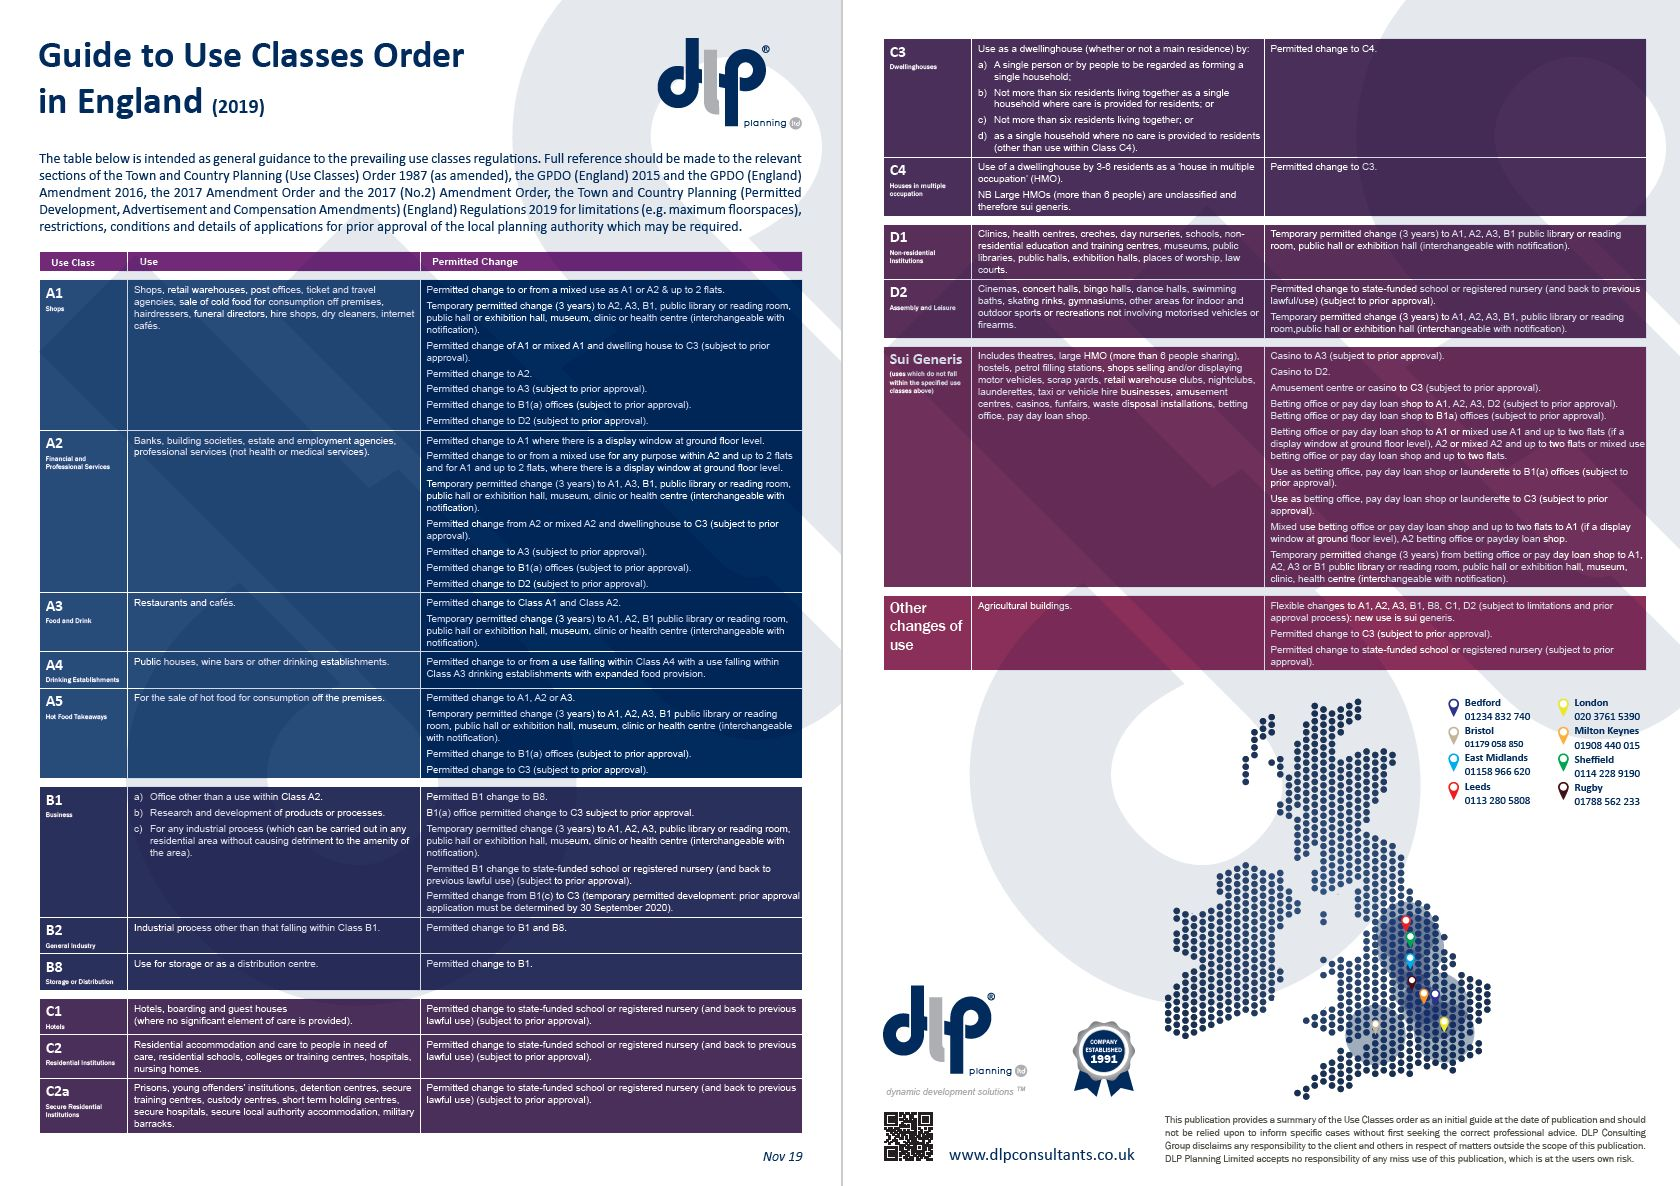 Guide to Use Classes Order in England Nov 2019